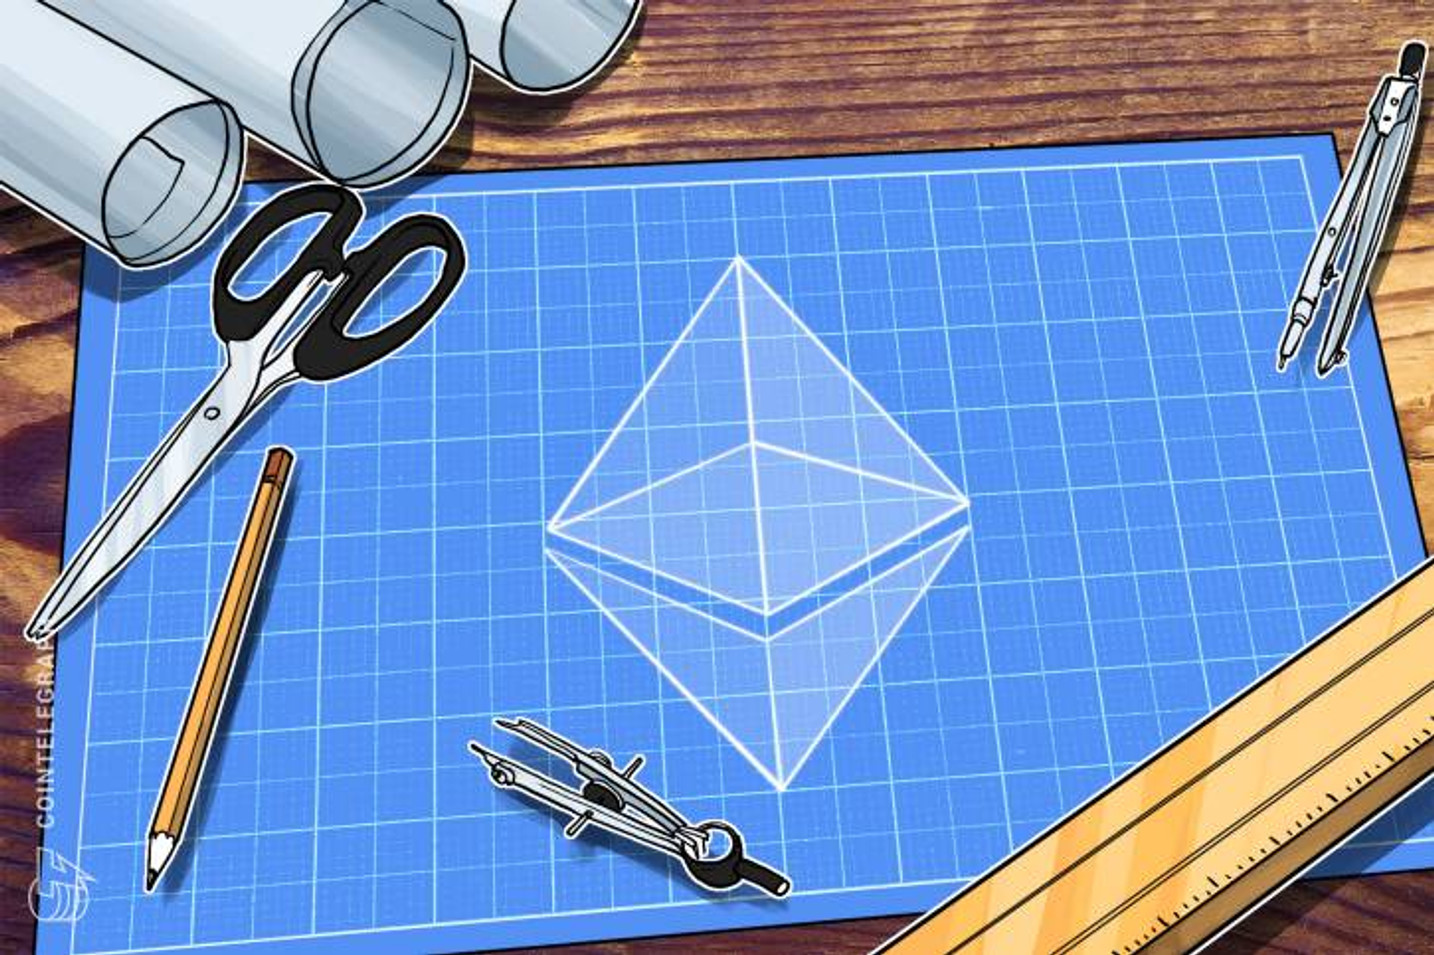 Consulting Firm Predicts Ethereum Could Reach $2,500 By The End Of 2018